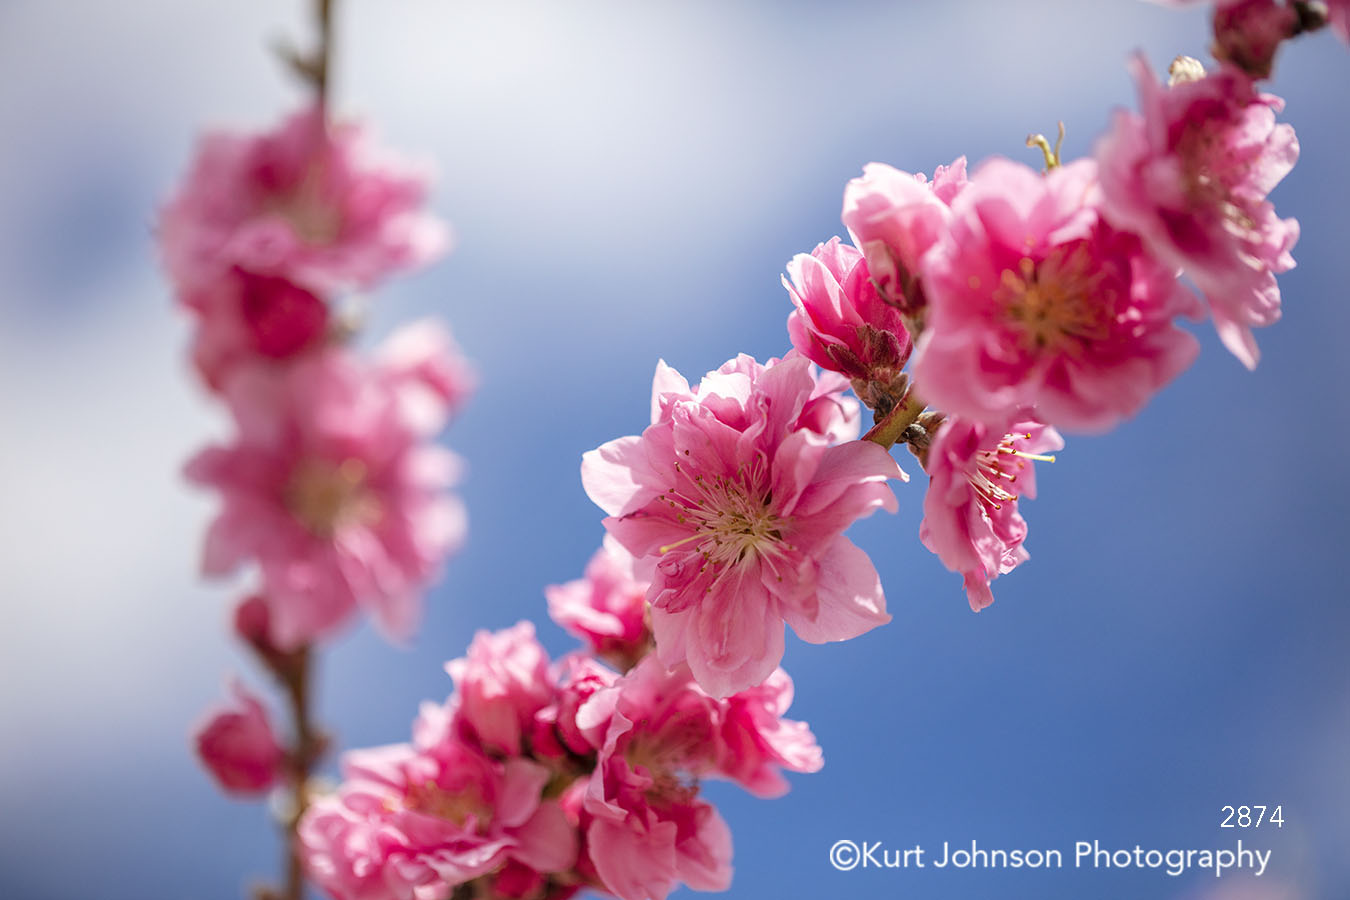 spring pink cherry blossom tree flower flowers branch blue sky detail macro close up